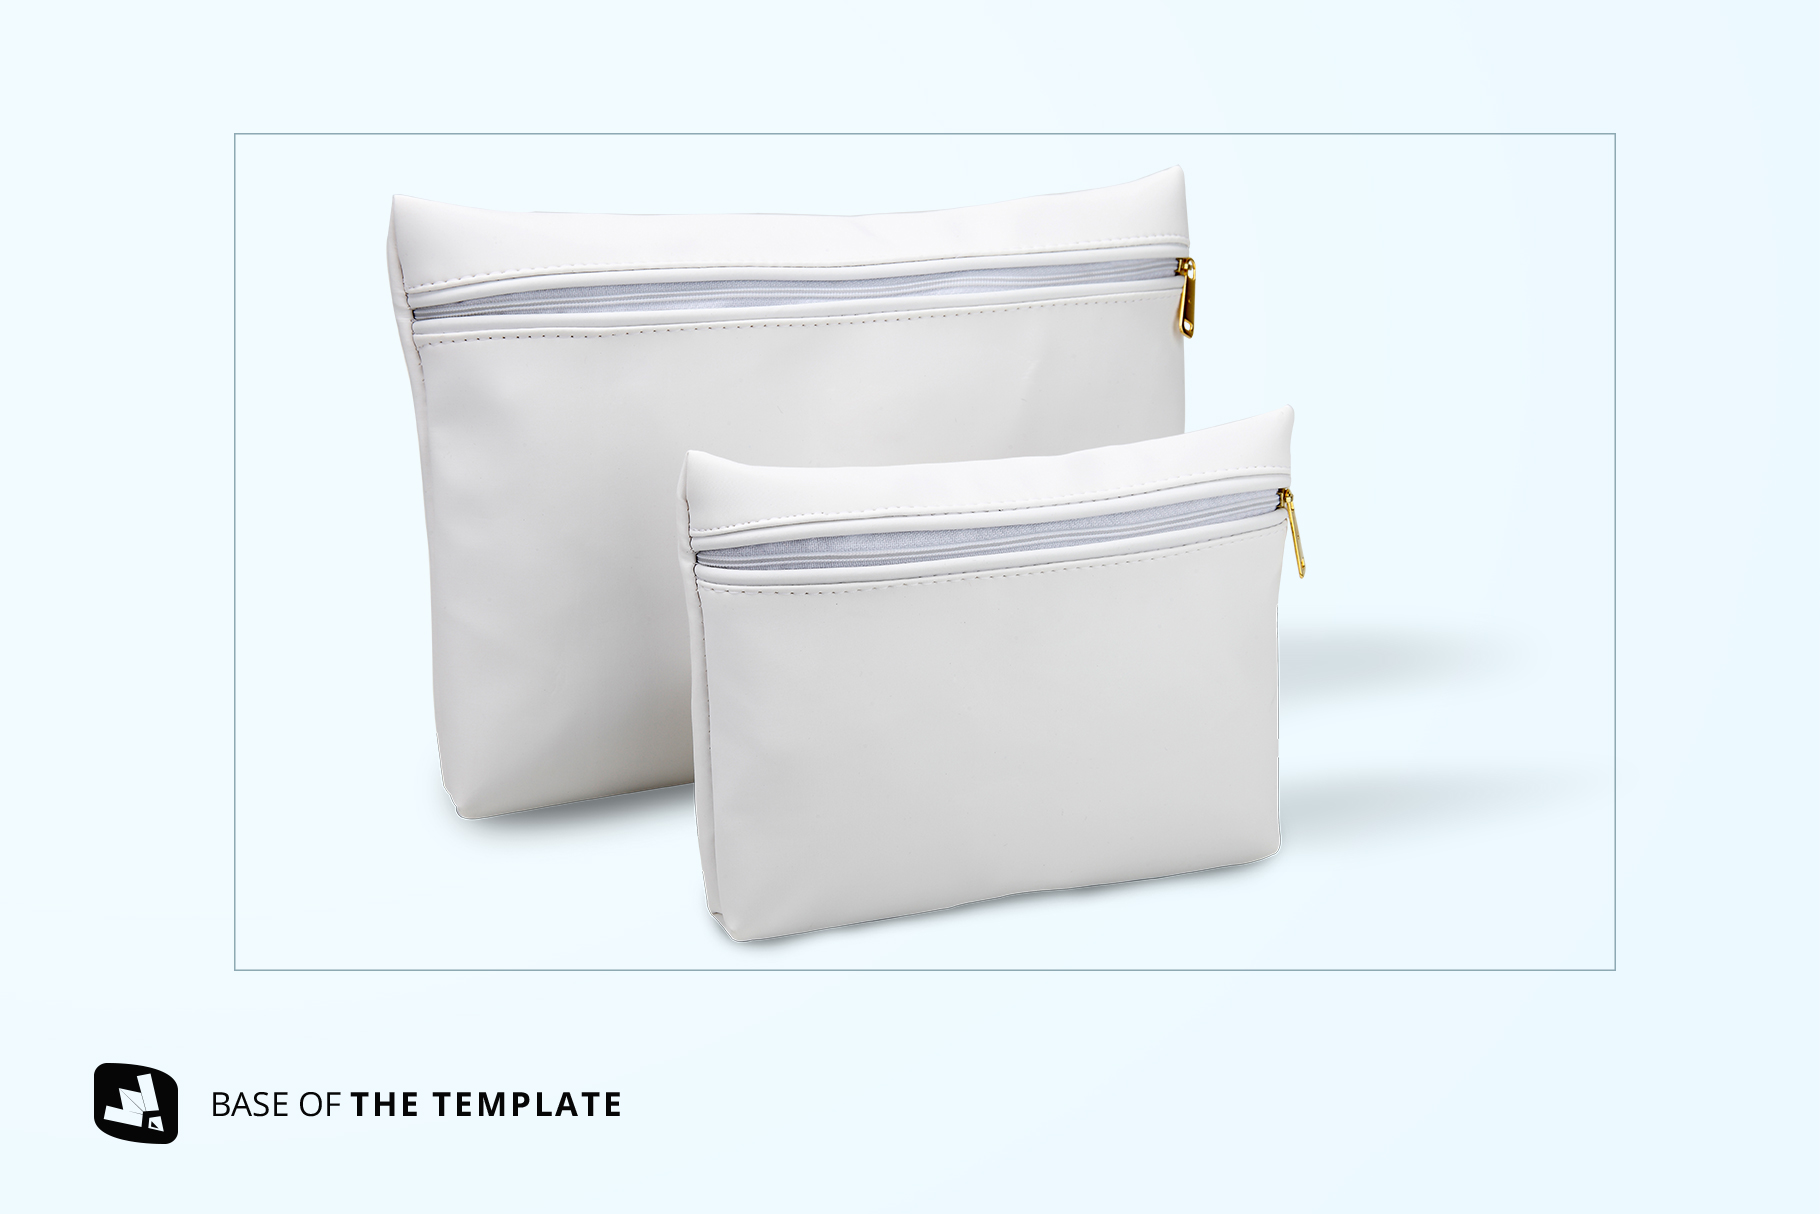 base image of the set of travel bathroom pouches mockup